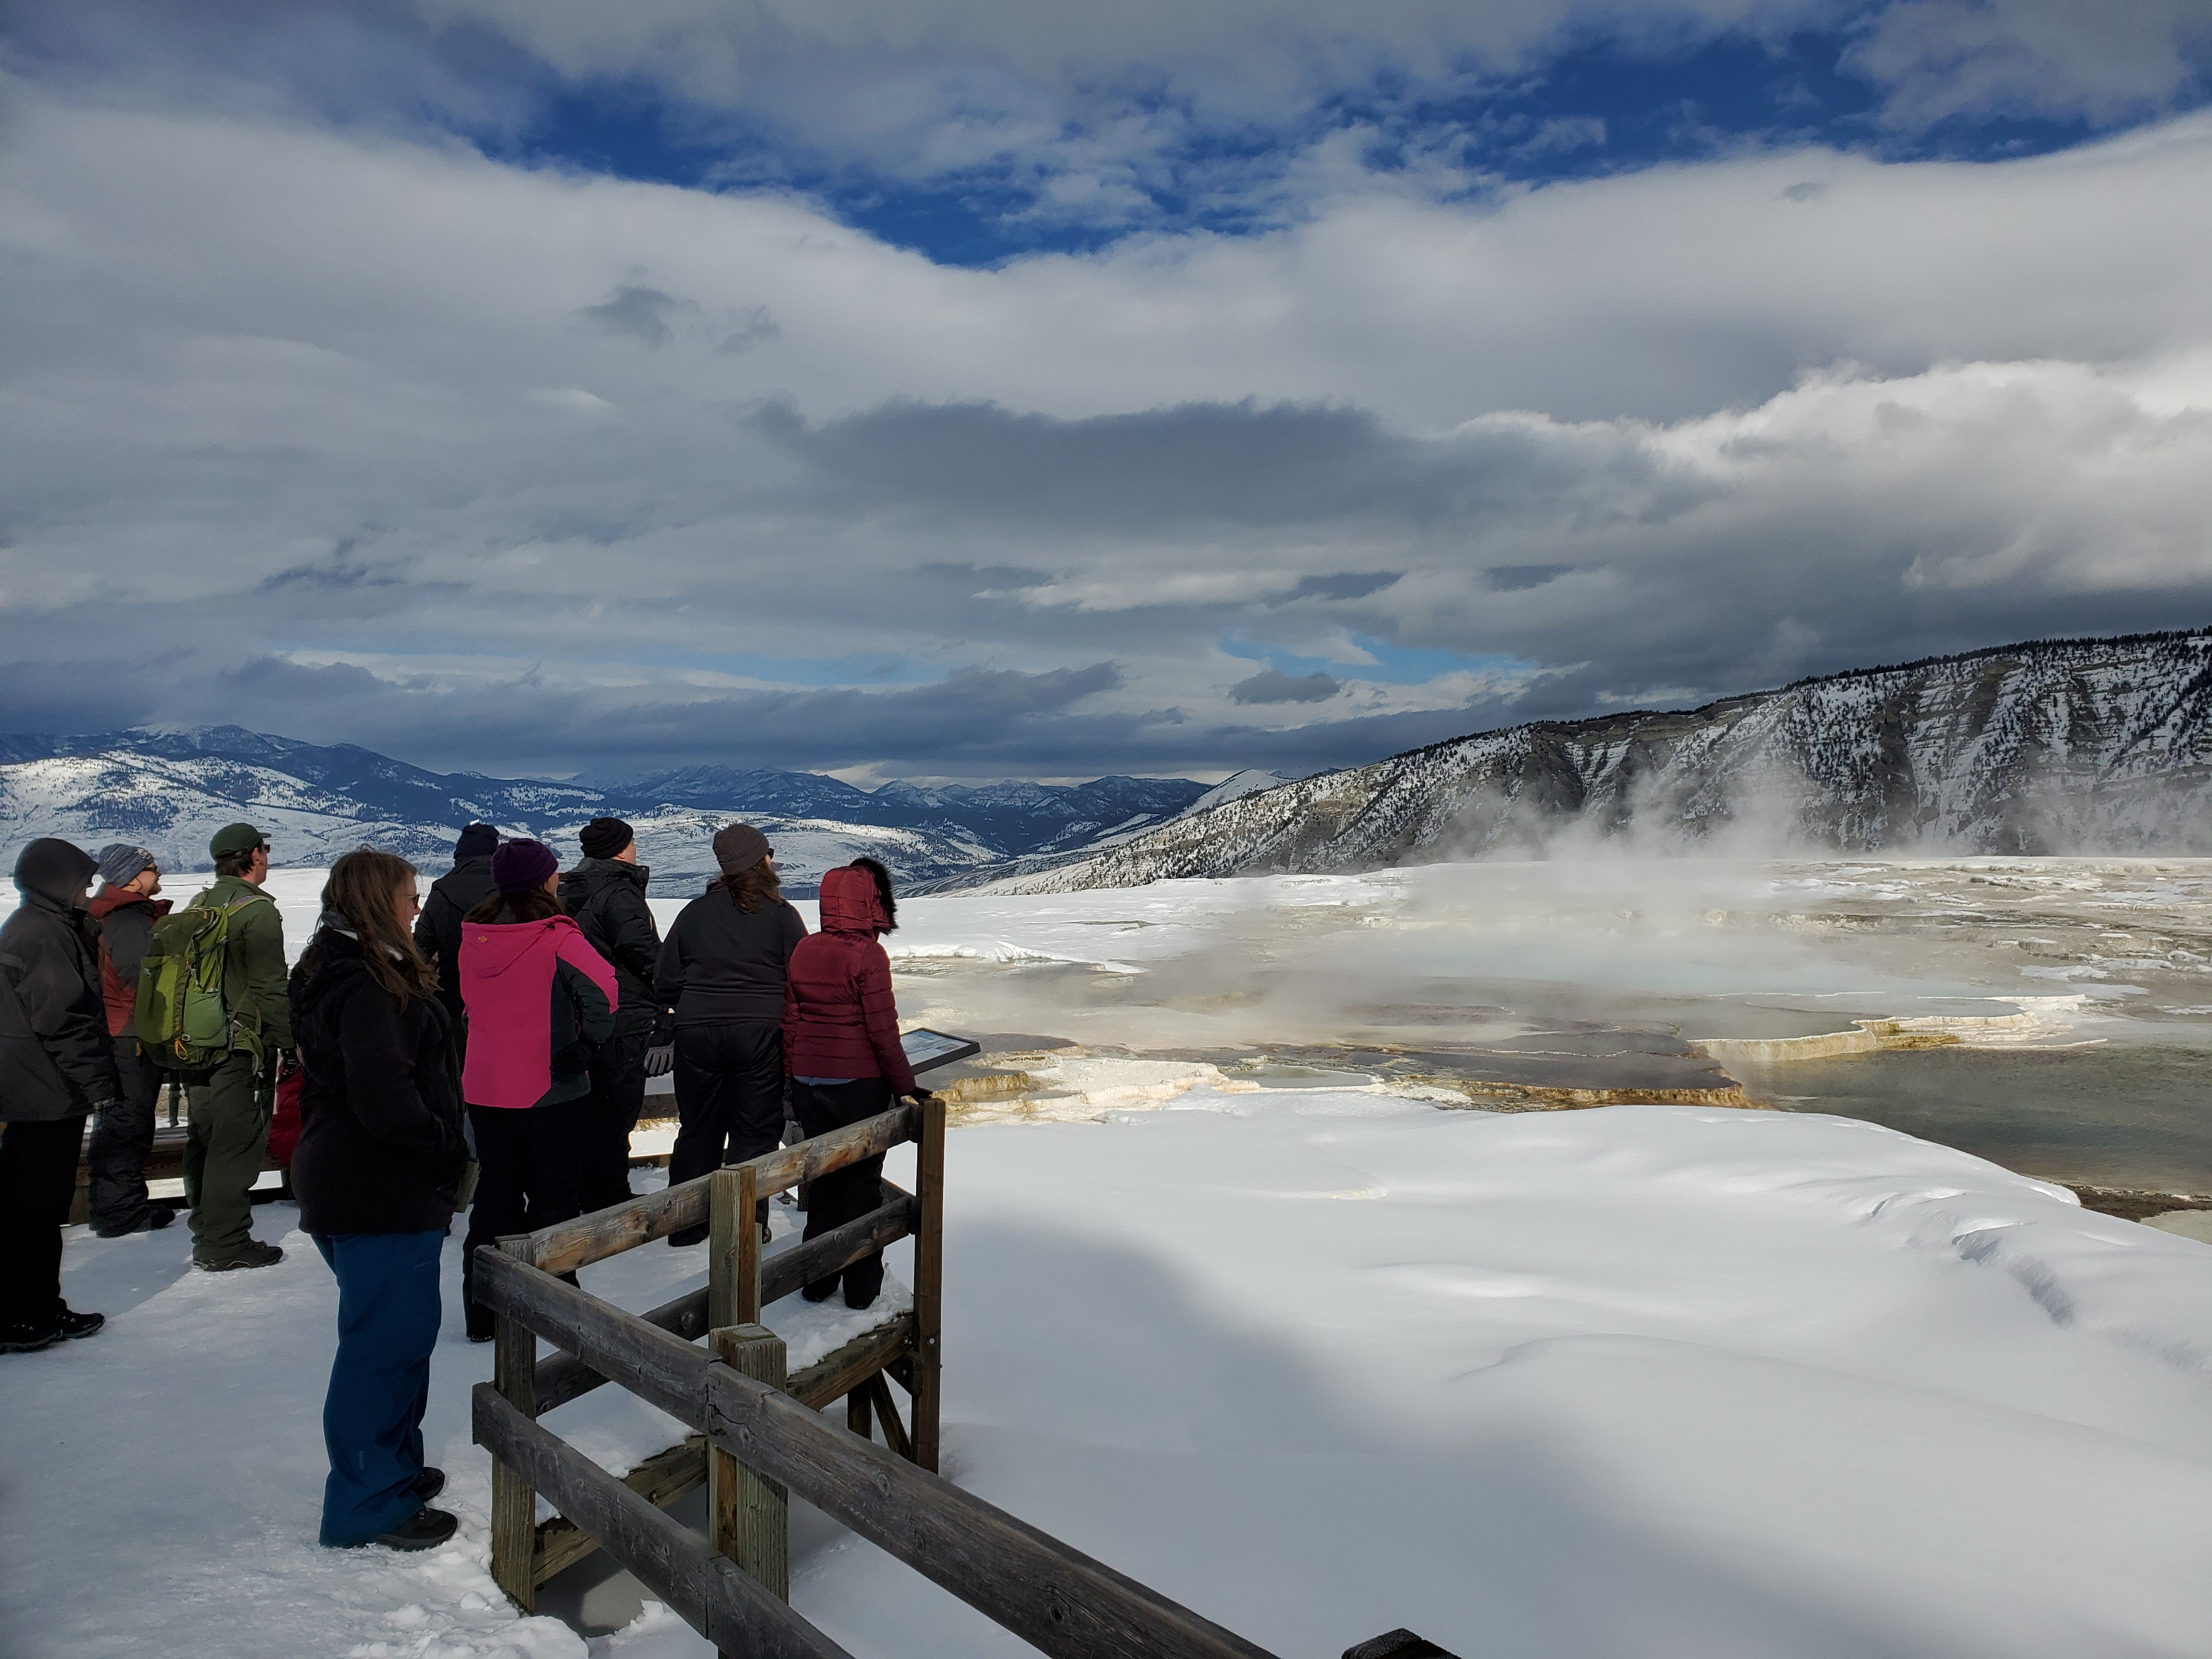 A group of people overlooking mammoth terraces